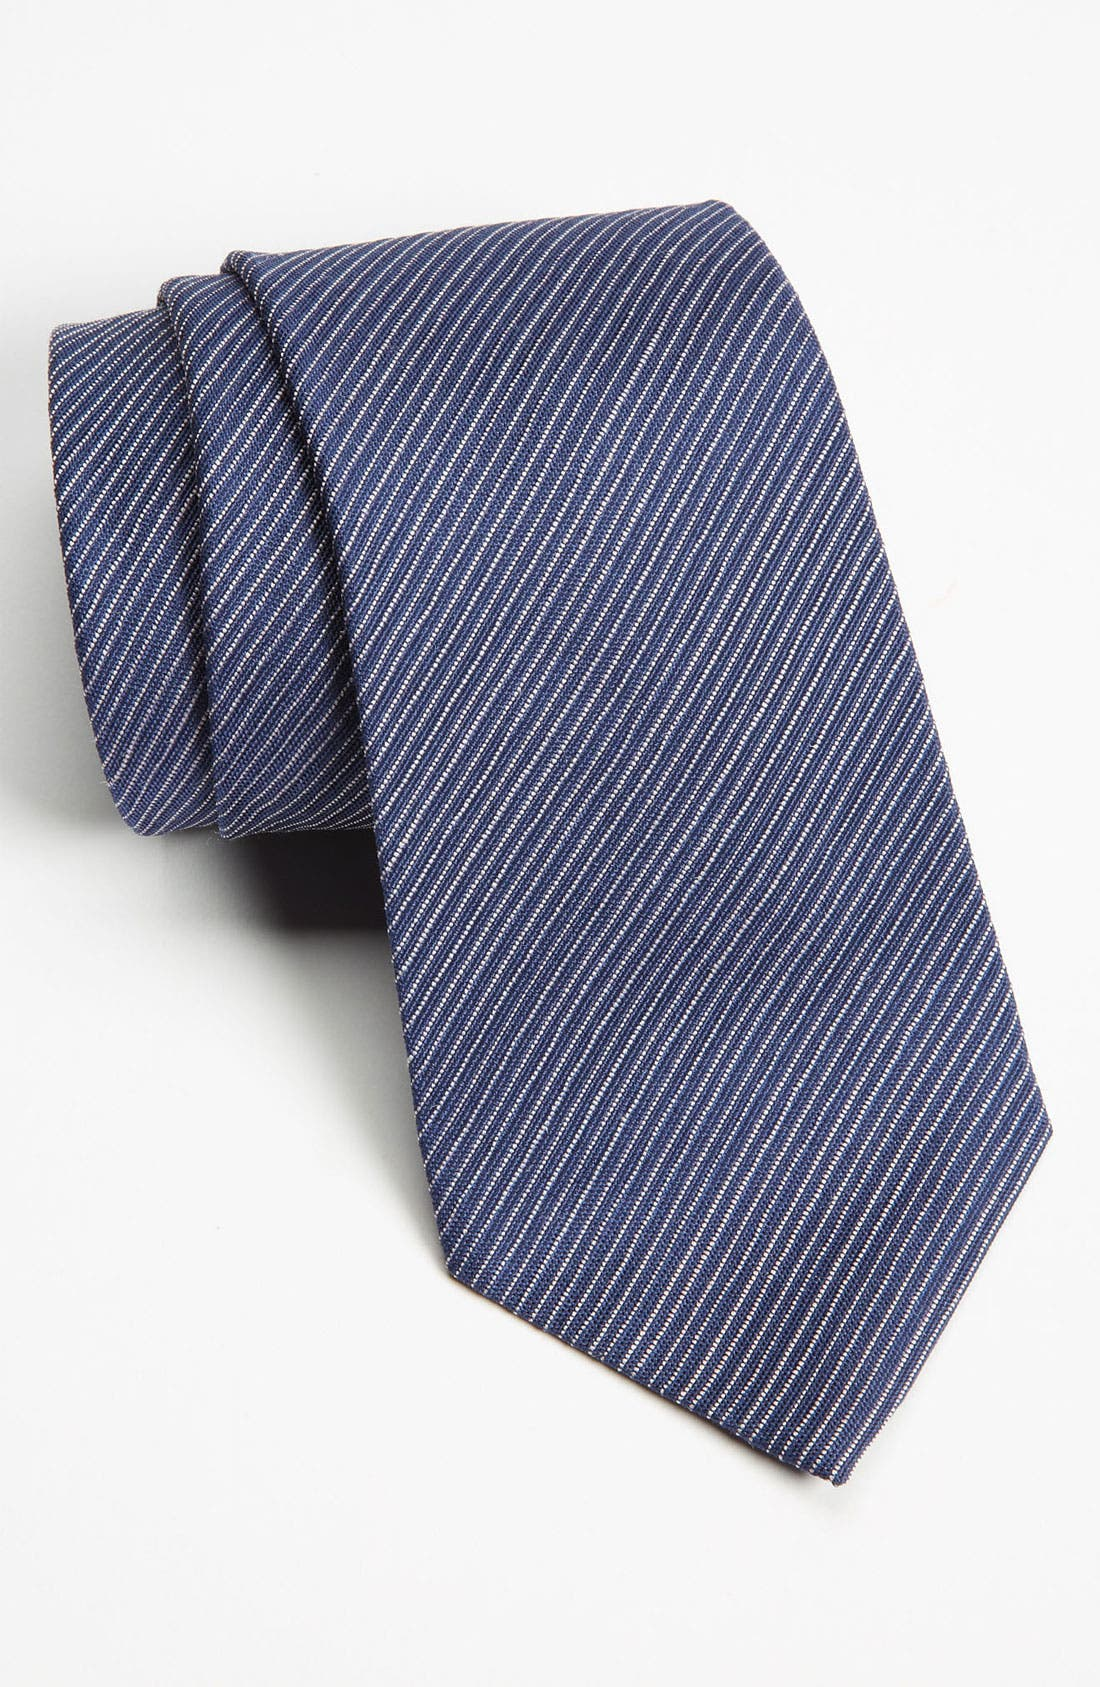 Alternate Image 1 Selected - Z Zegna Stripe Woven Silk Tie